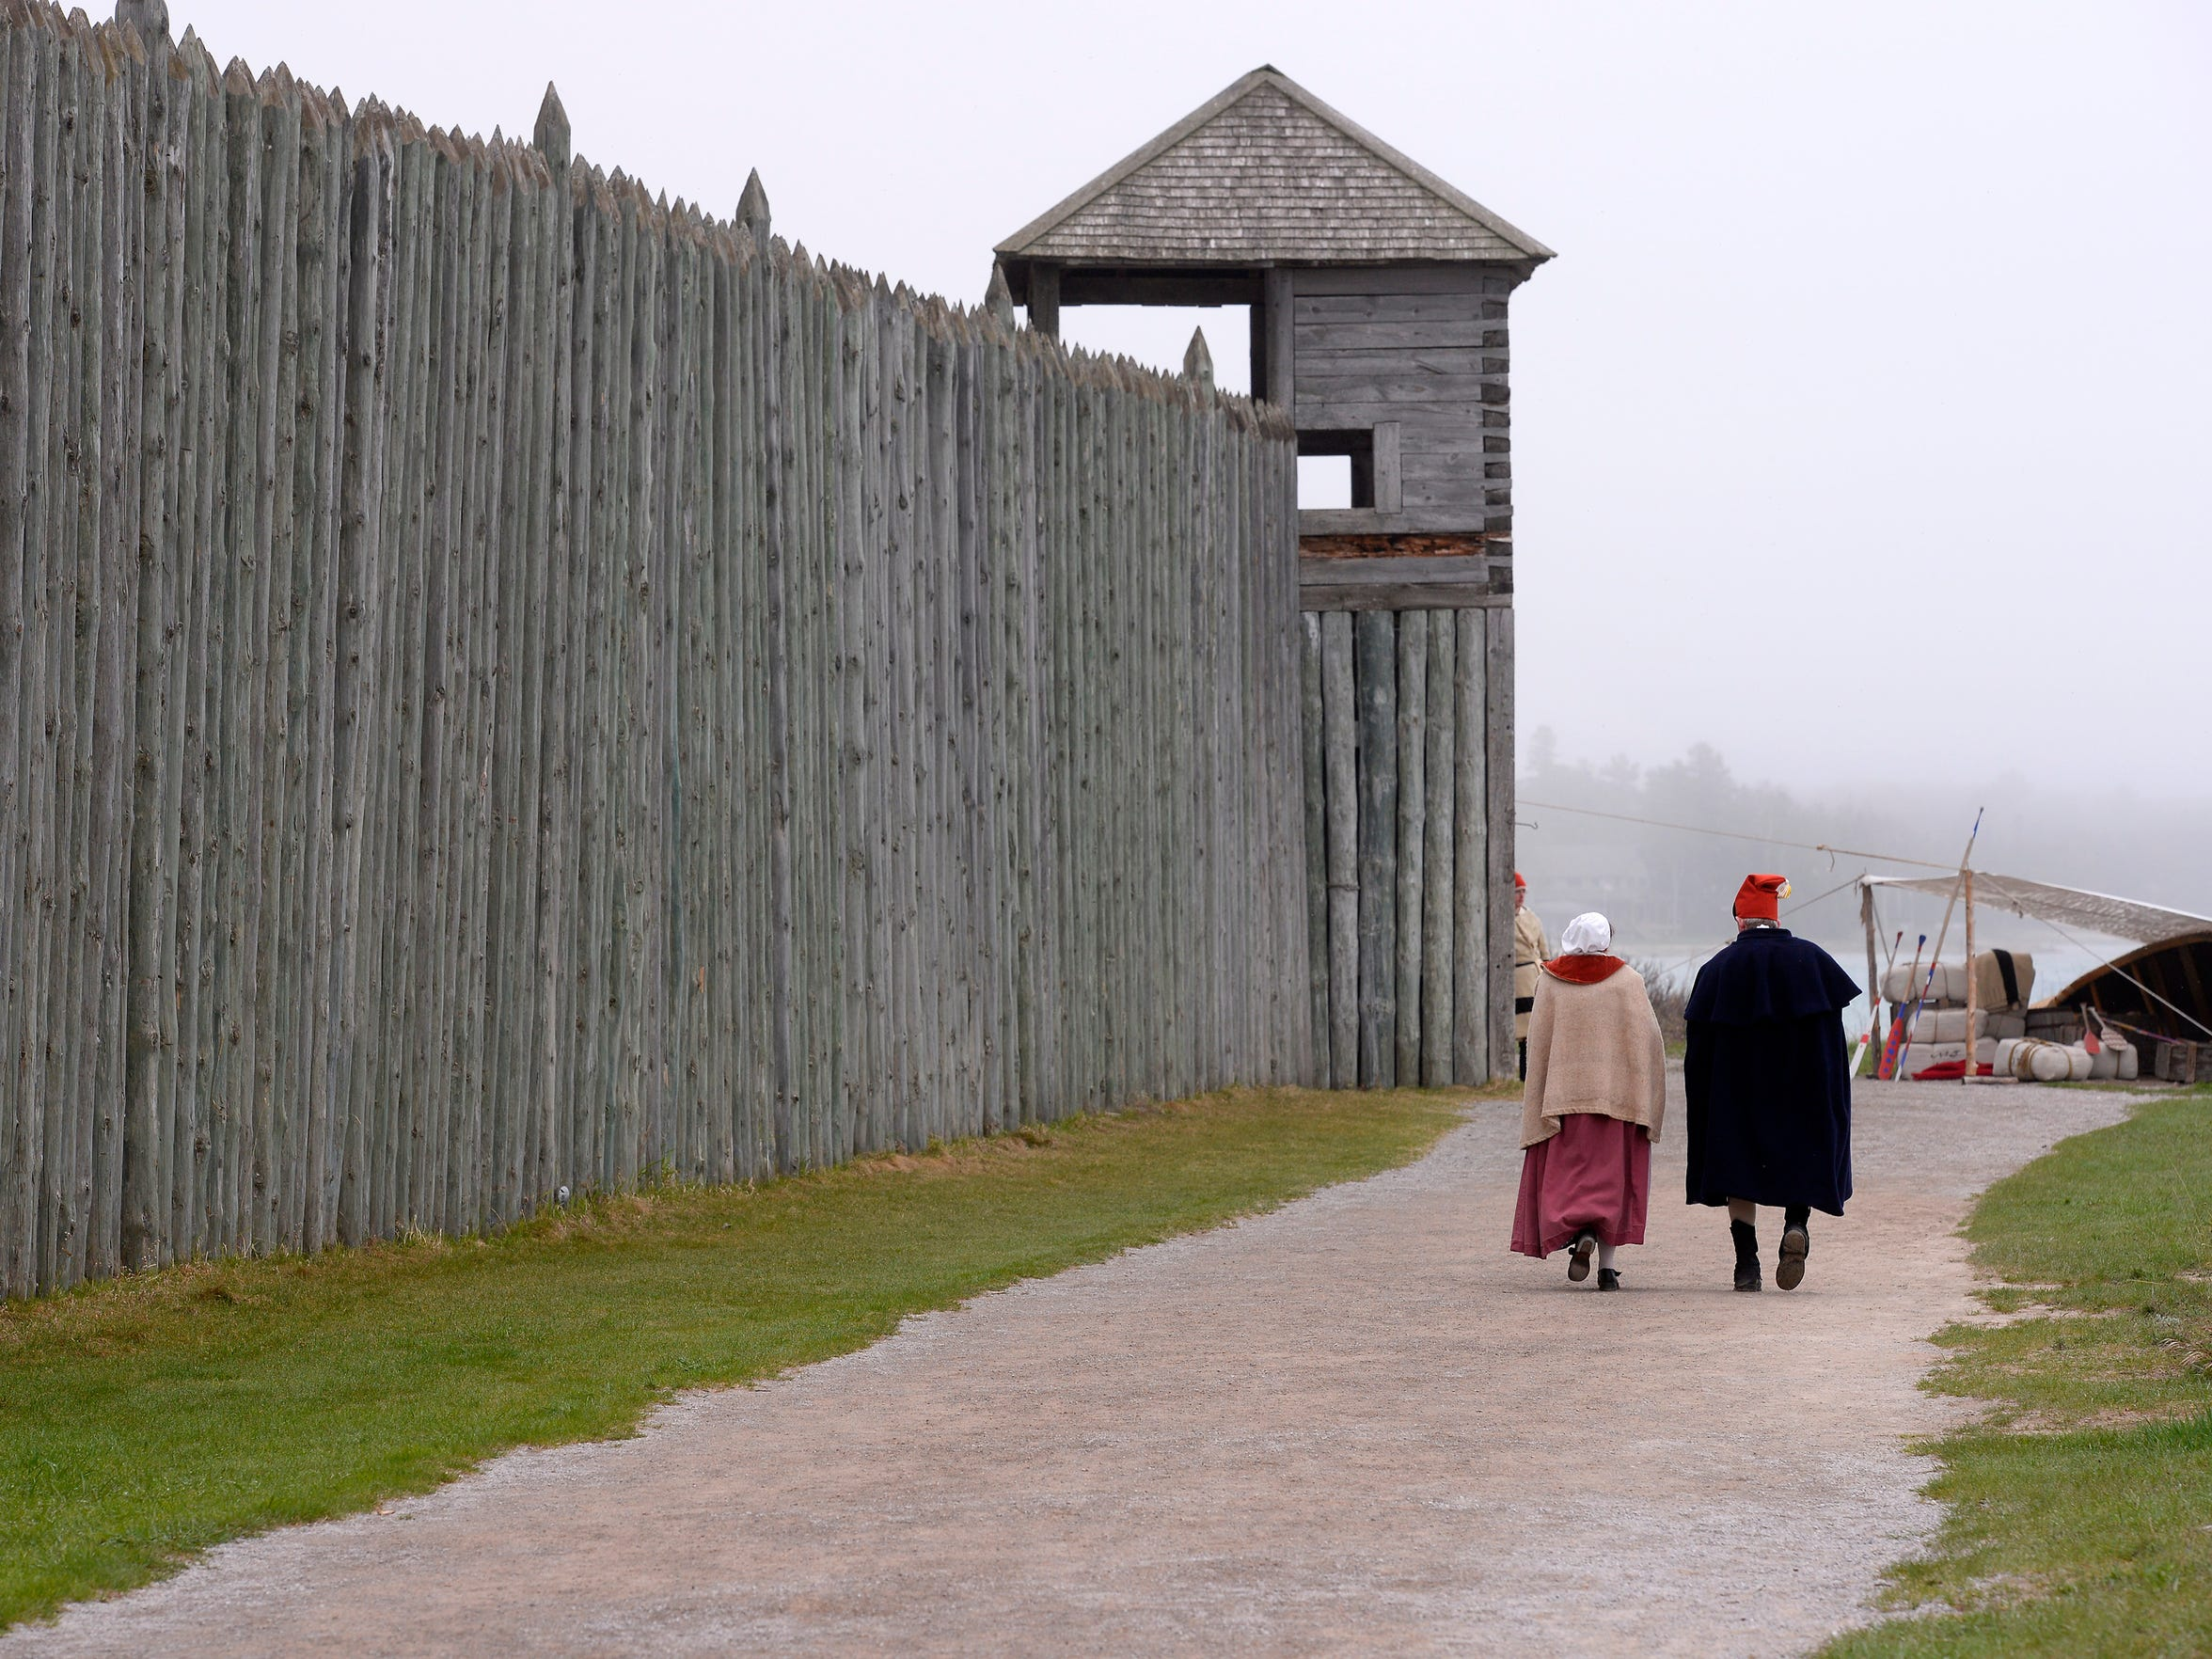 The high walls of Colonial Michilimackinac on the south